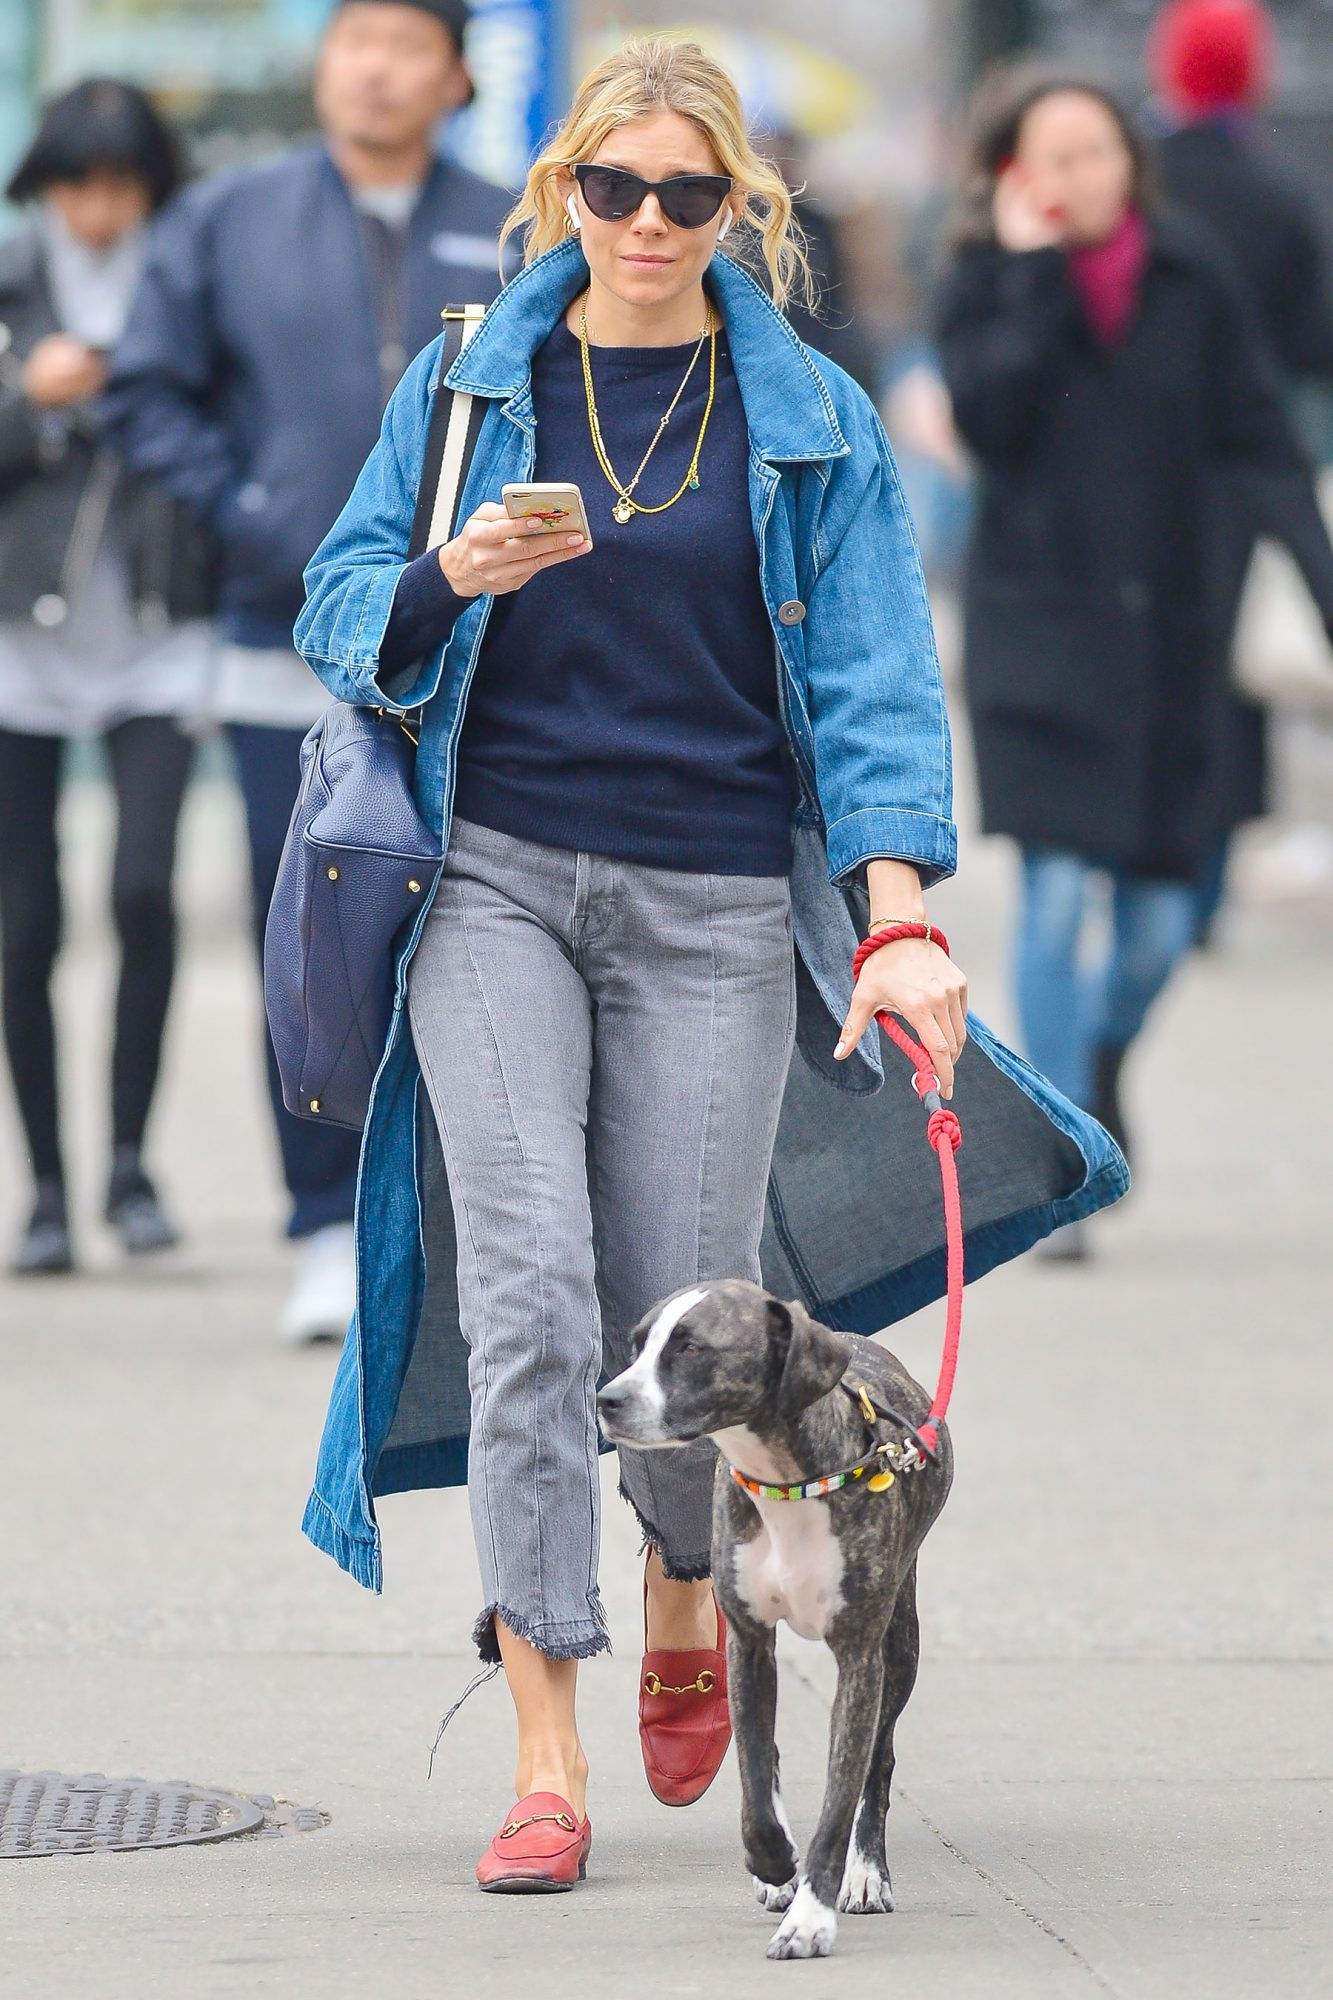 Sienna Miller is Spotted Walking Her Dog in New York City